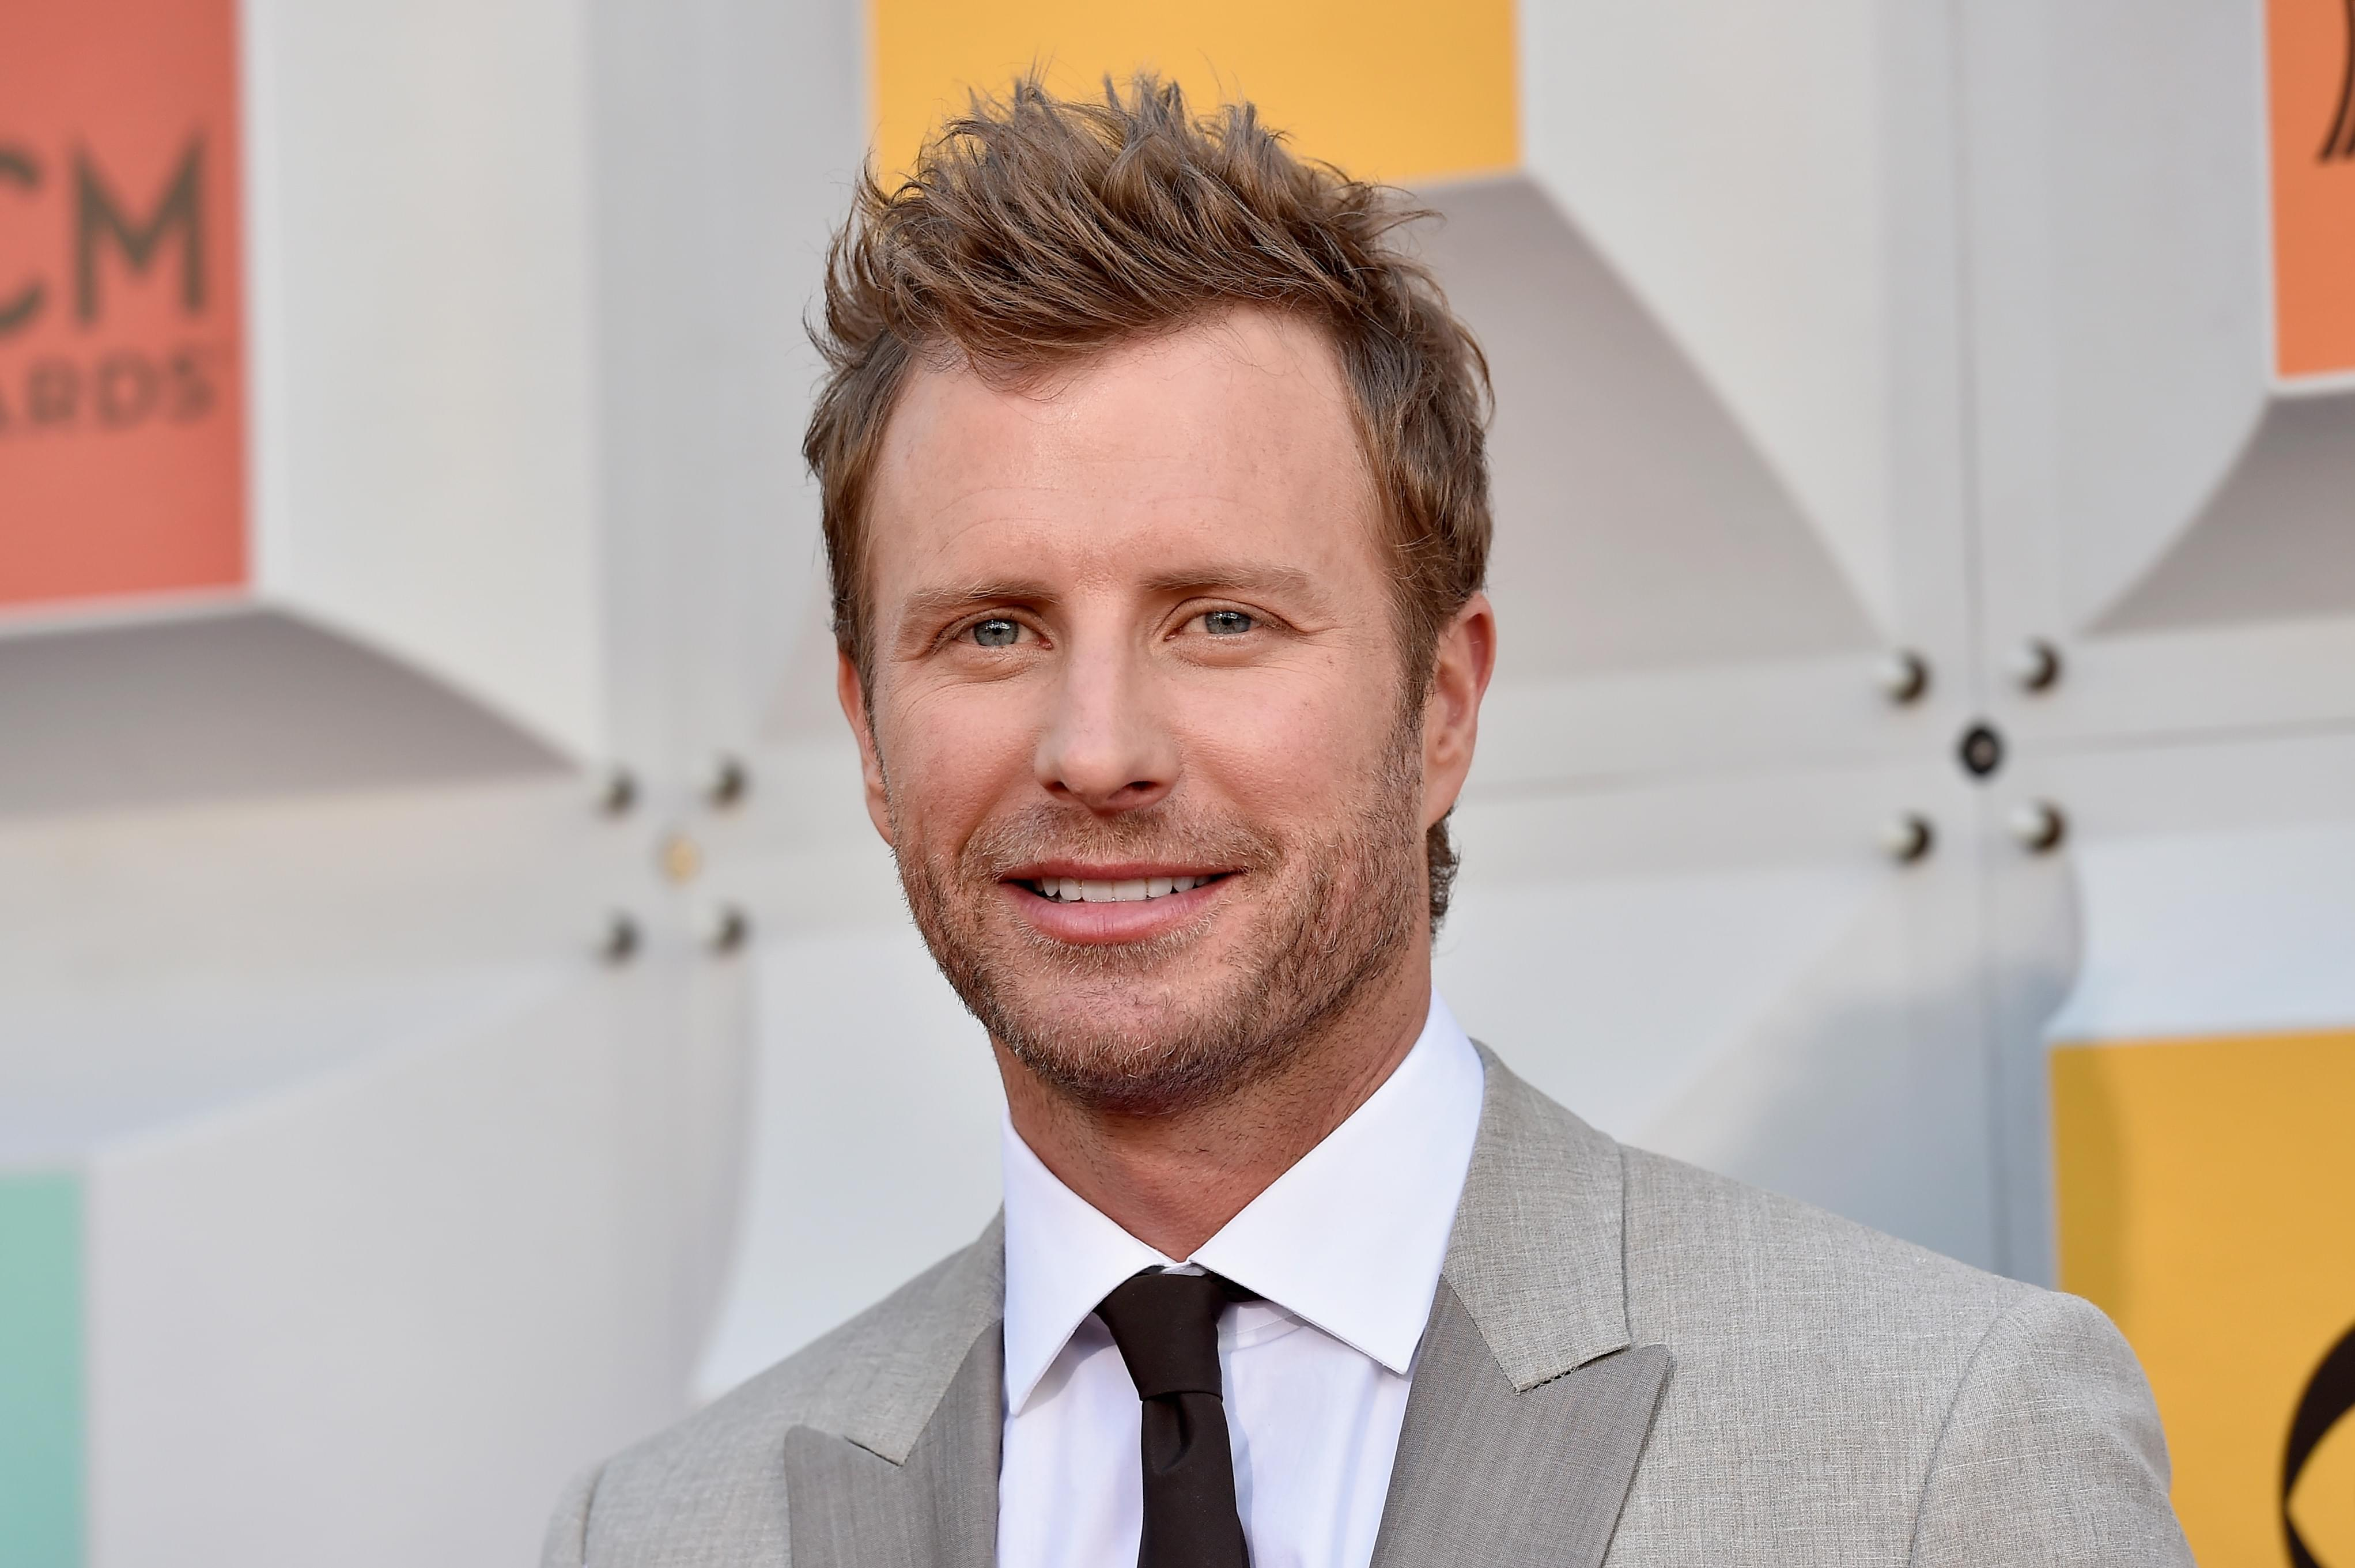 Dierks Bentley Fined For Fishing Without A License After Festival Goers Turn Him In